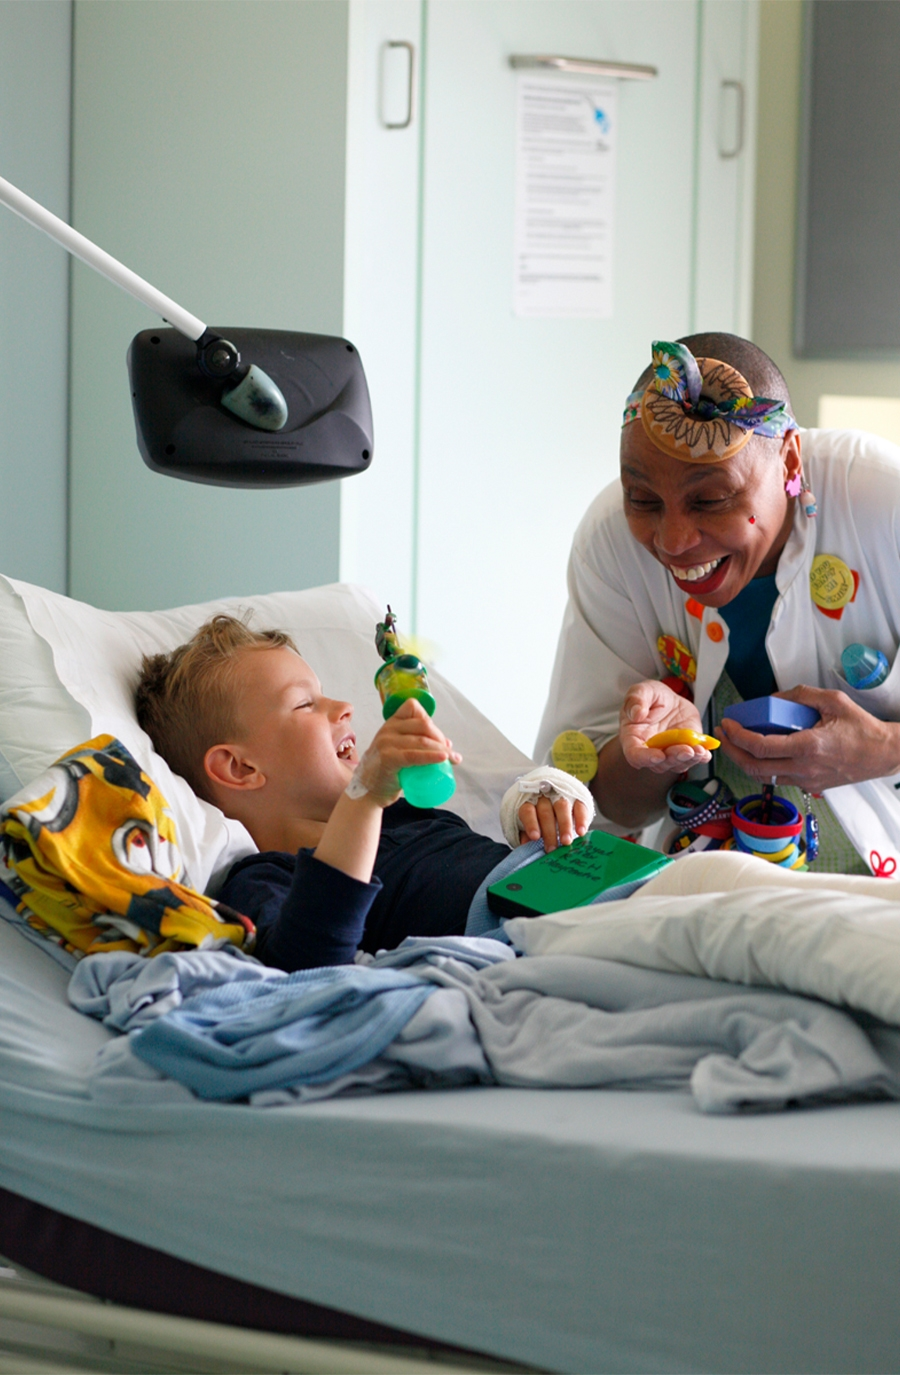 Theodora sends specialist trained performers, known as Giggle Doctors, to improve children's experience of hospitals, hospices and specialist care centres across the UK.